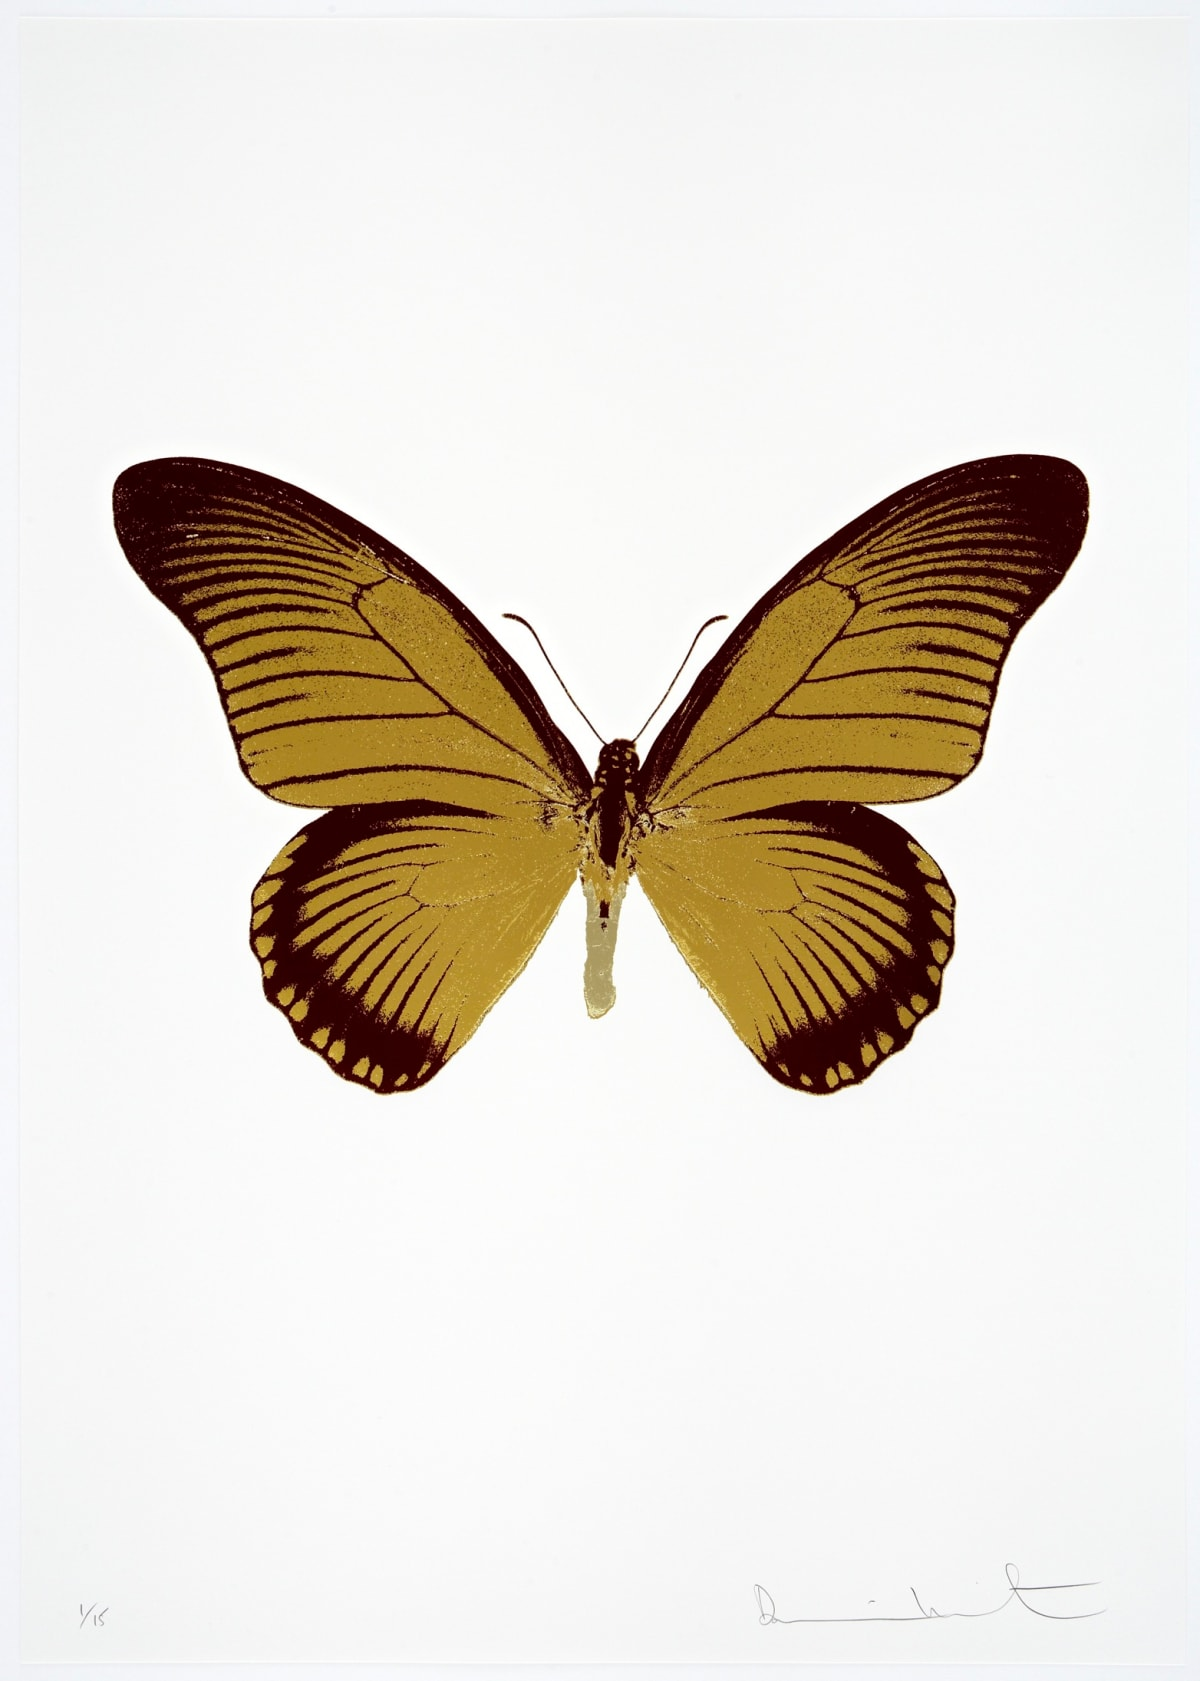 Damien Hirst The Souls IV - Oriental Gold/Burgundy/Cool Gold Damien Hirst butterfly foil print for sale Damien Hirst print for sale , 2010 3 colour foil block on 300gsm Arches 88 archival paper. Signed and numbered. Published by Paul Stolper and Other Criteria 72 x 51cm OC8036 / 1418-59 Edition of 15